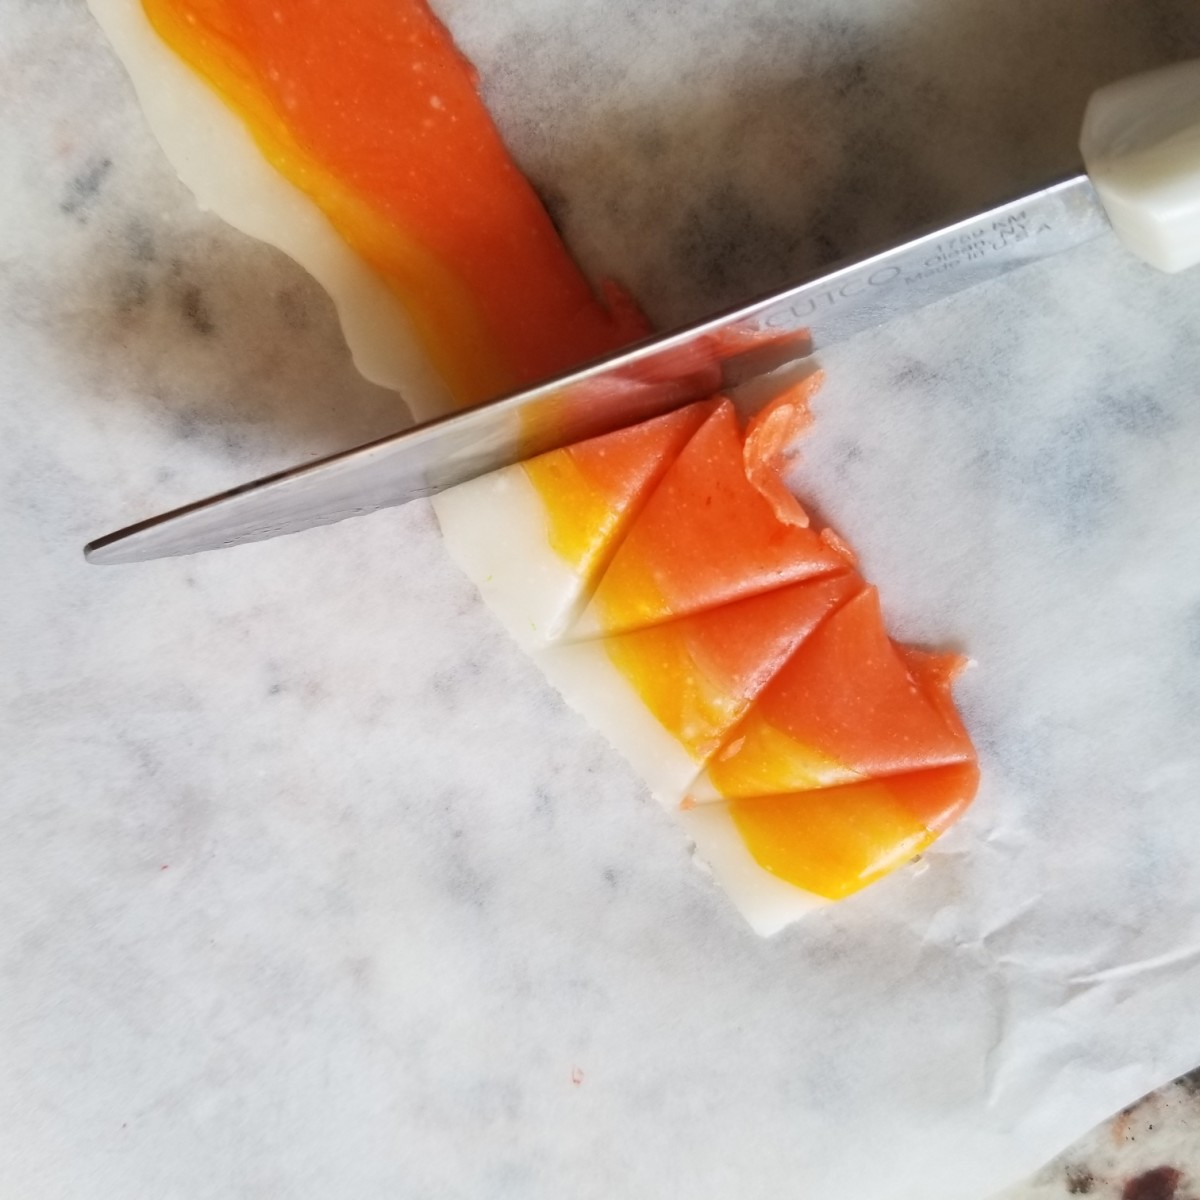 Homemade Candy Corn Recipe: A Delicious Holiday Treat